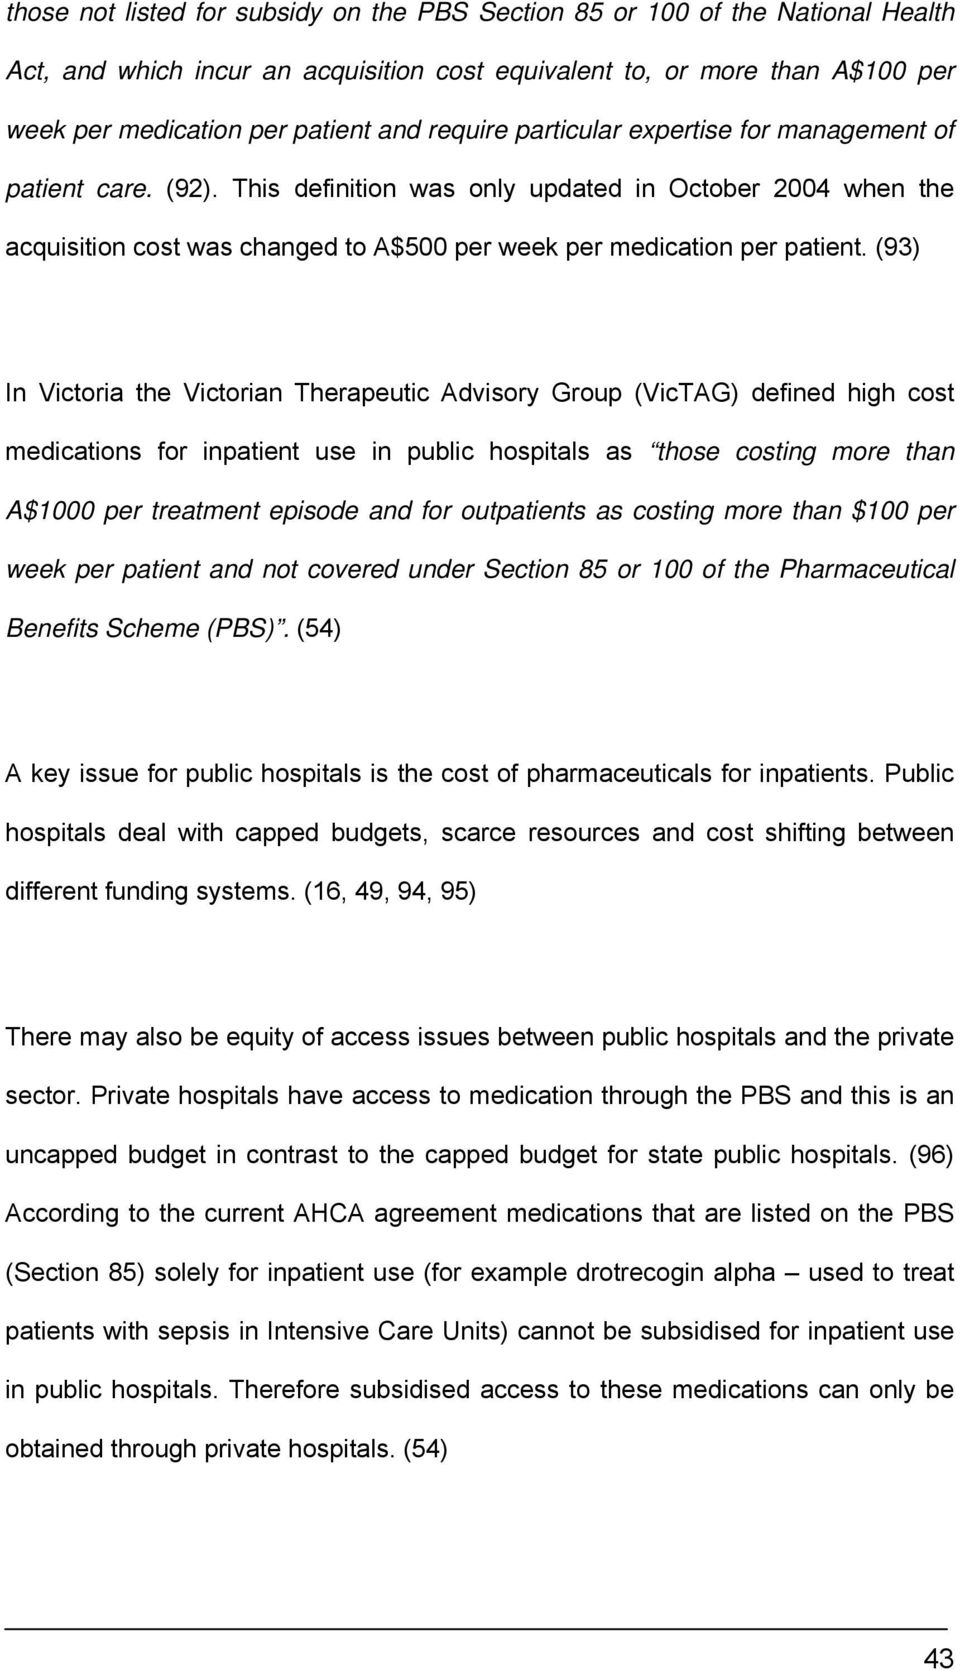 (93) In Victoria the Victorian Therapeutic Advisory Group (VicTAG) defined high cost medications for inpatient use in public hospitals as those costing more than A$1000 per treatment episode and for